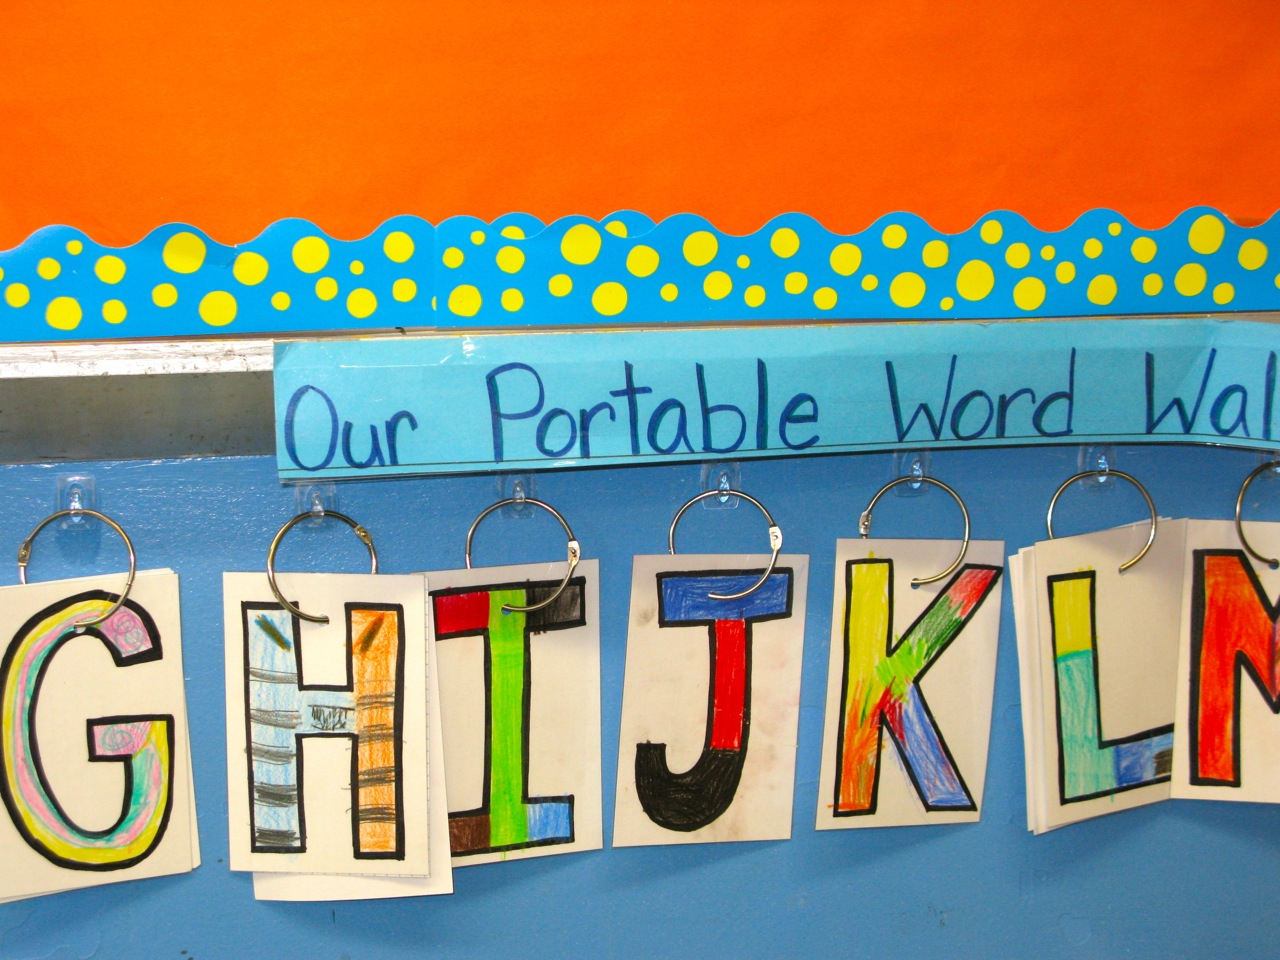 Our portable word wall.